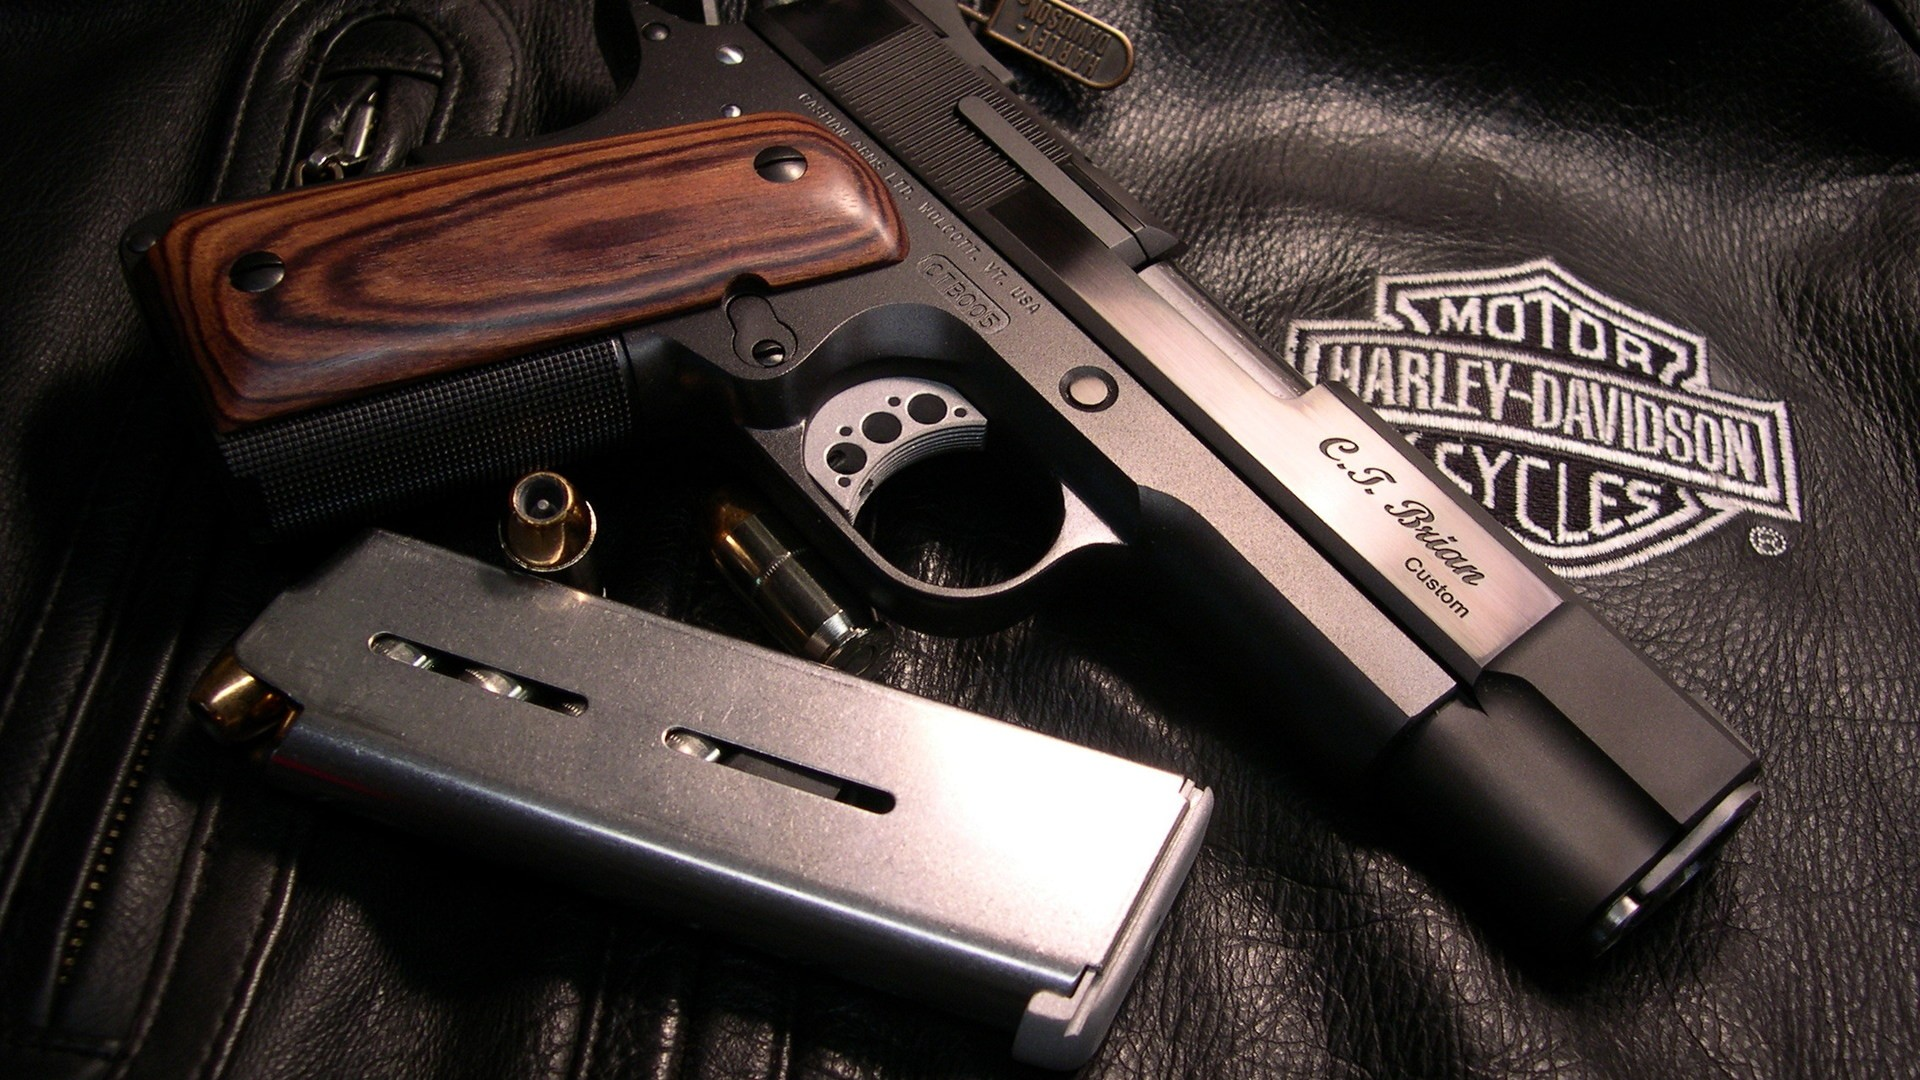 Best Guns And Harley Davidson Wallpaper Deskto 3047 Wallpaper High 1920x1080